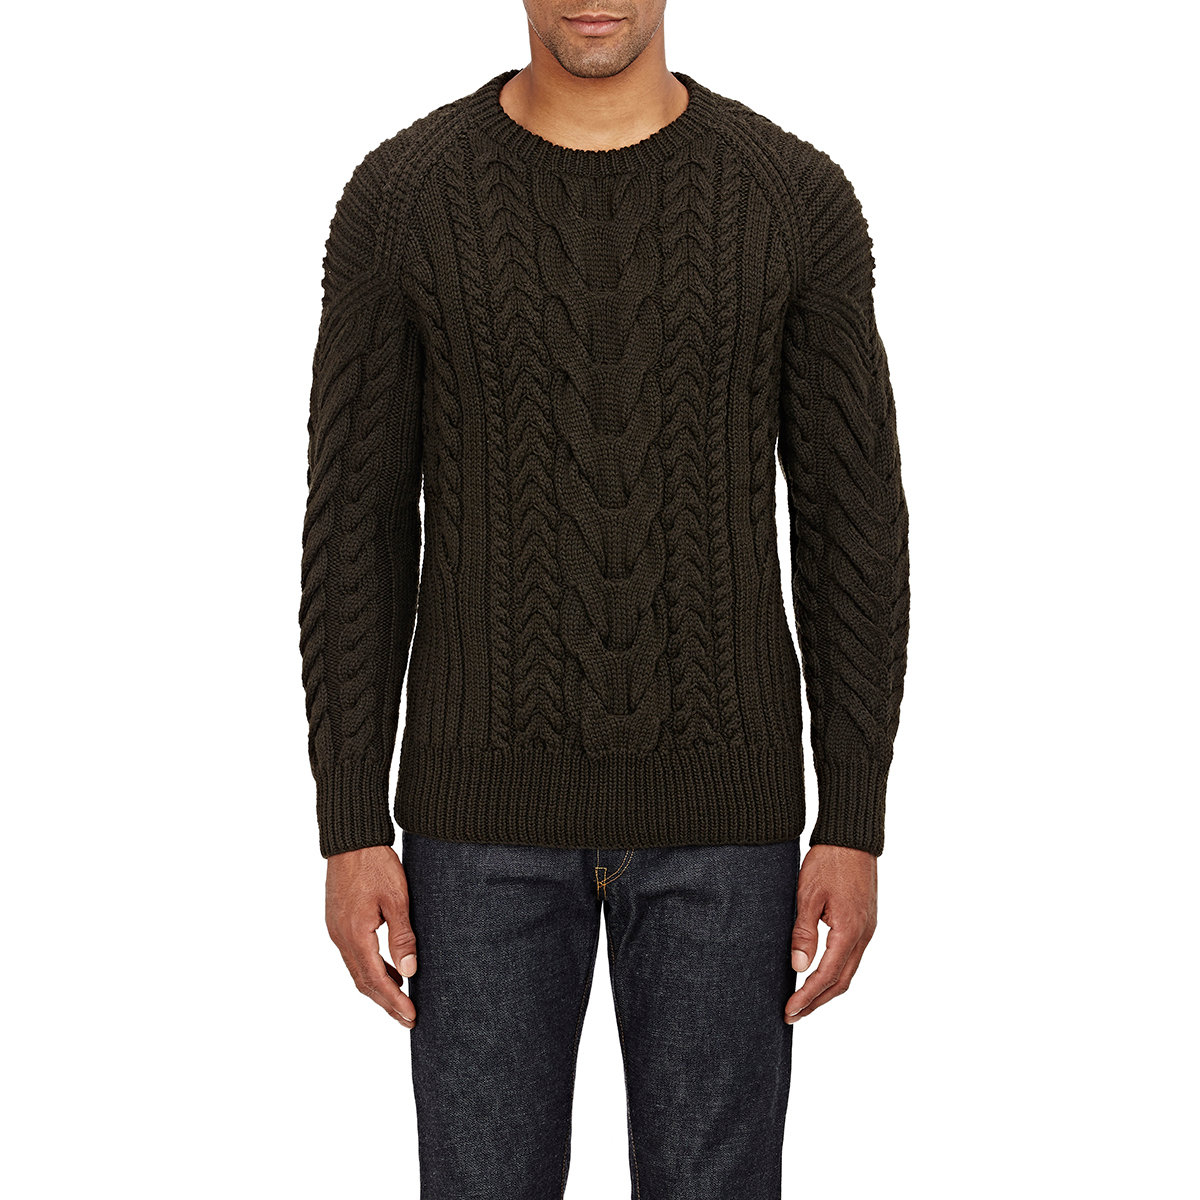 Ralph lauren black label Chunky Cable-knit Sweater in Green for ...